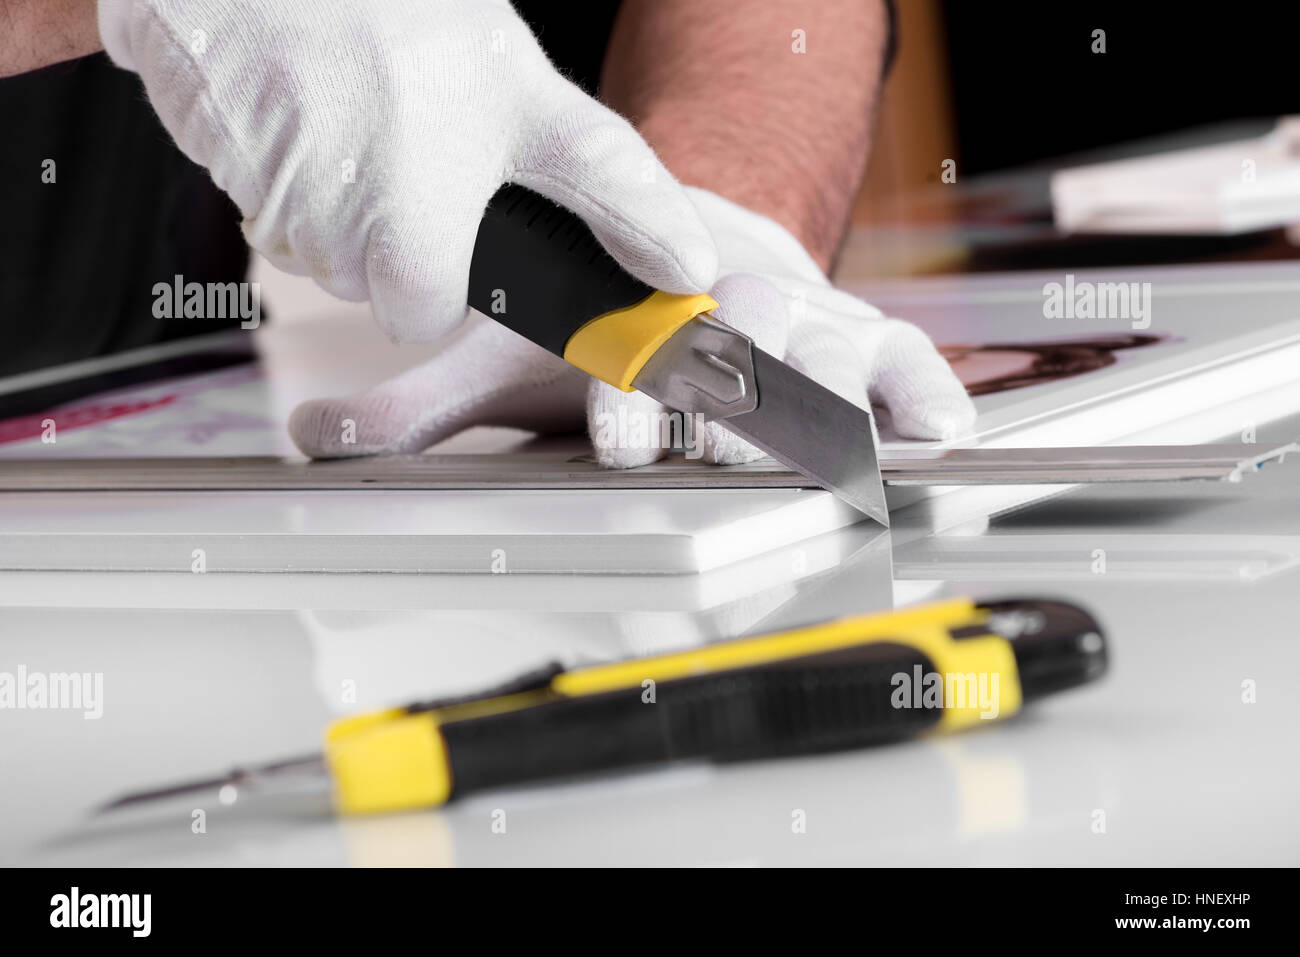 Professional hands in gloves cutting off edges of printed photography on white Foamex PVC panel board with another - Stock Image